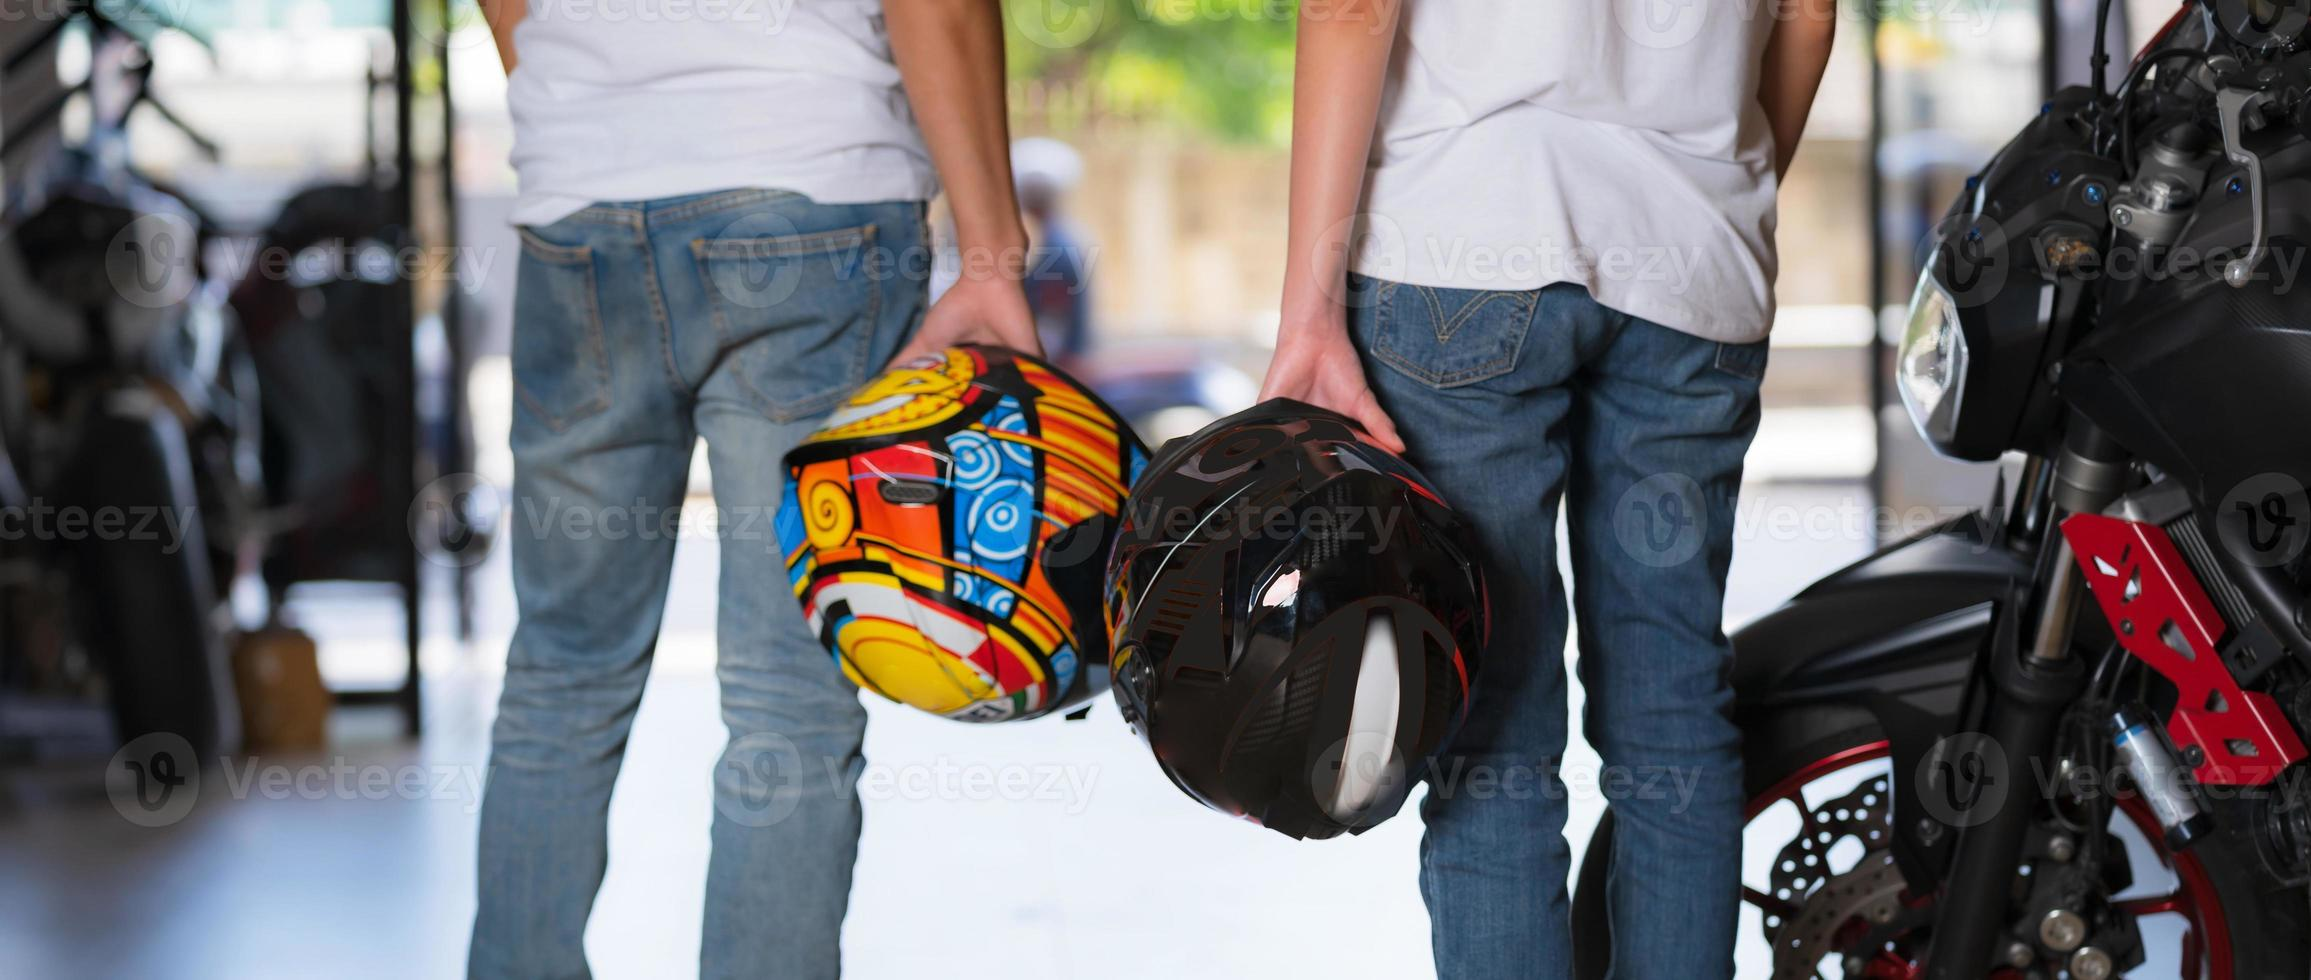 Traveling couple carrying motorcycle helmets photo